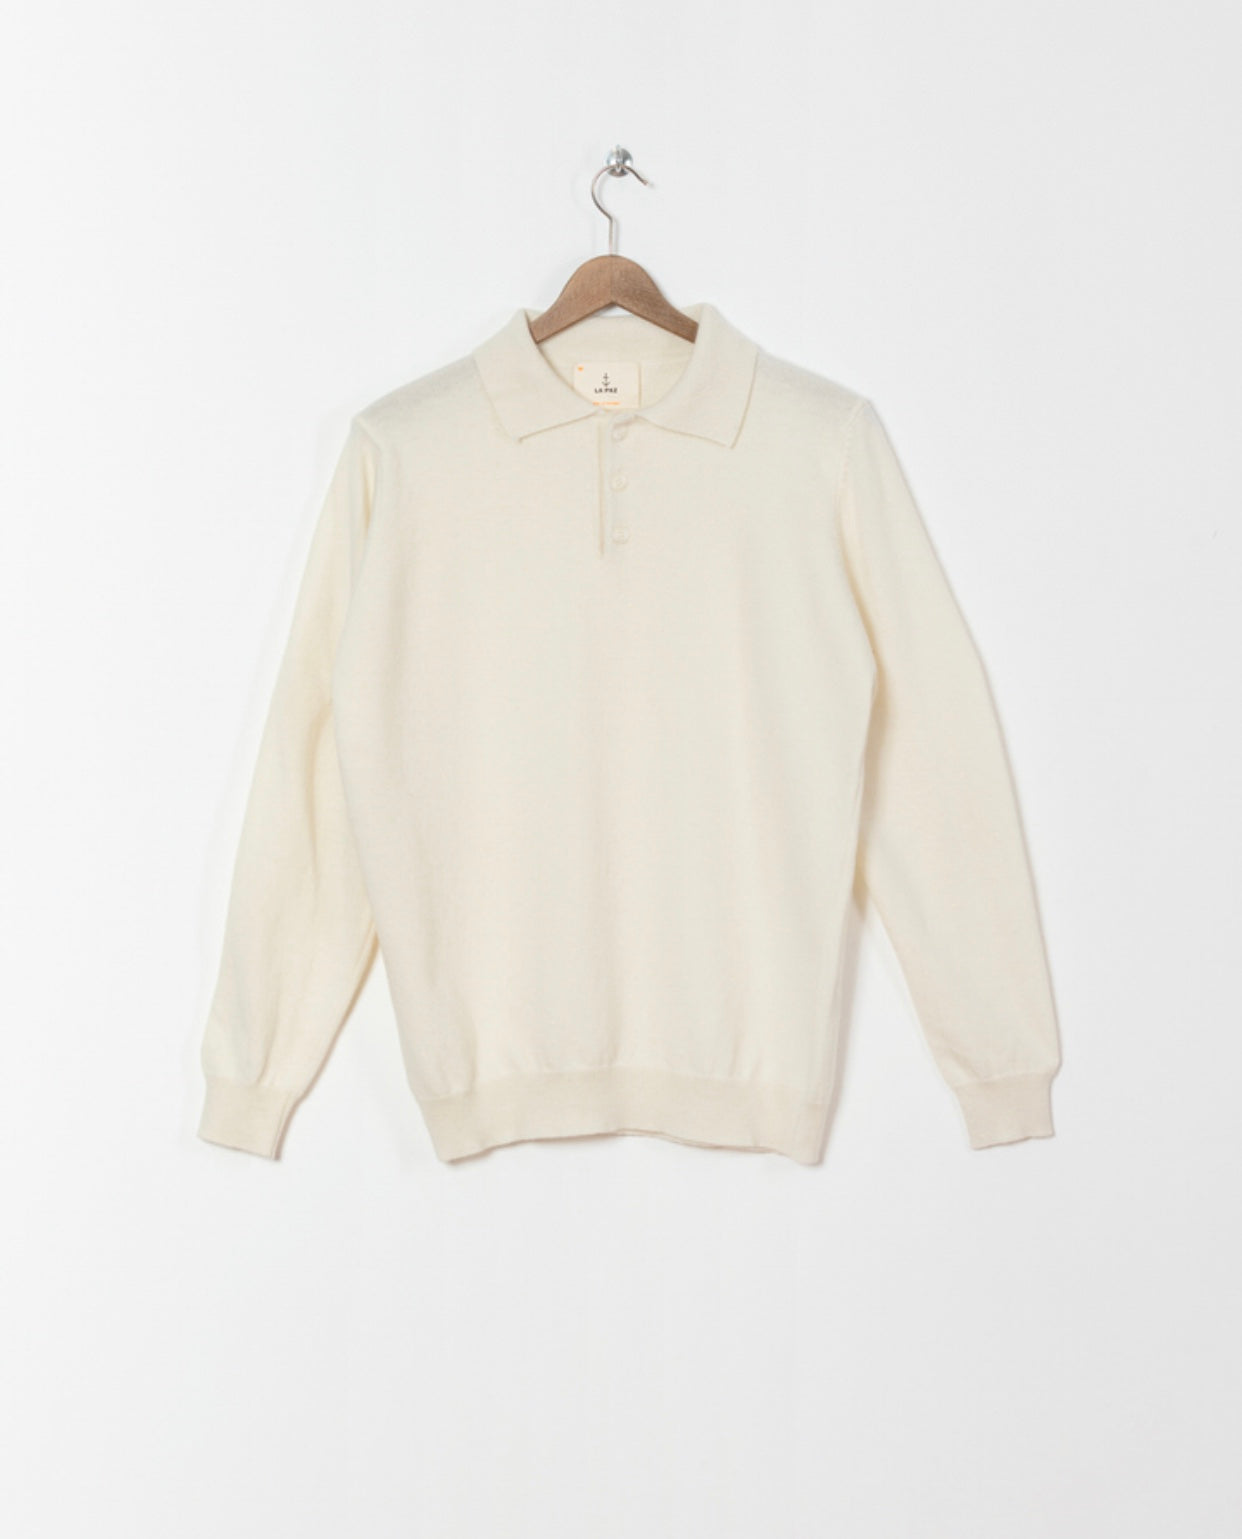 eca -  knitted polo